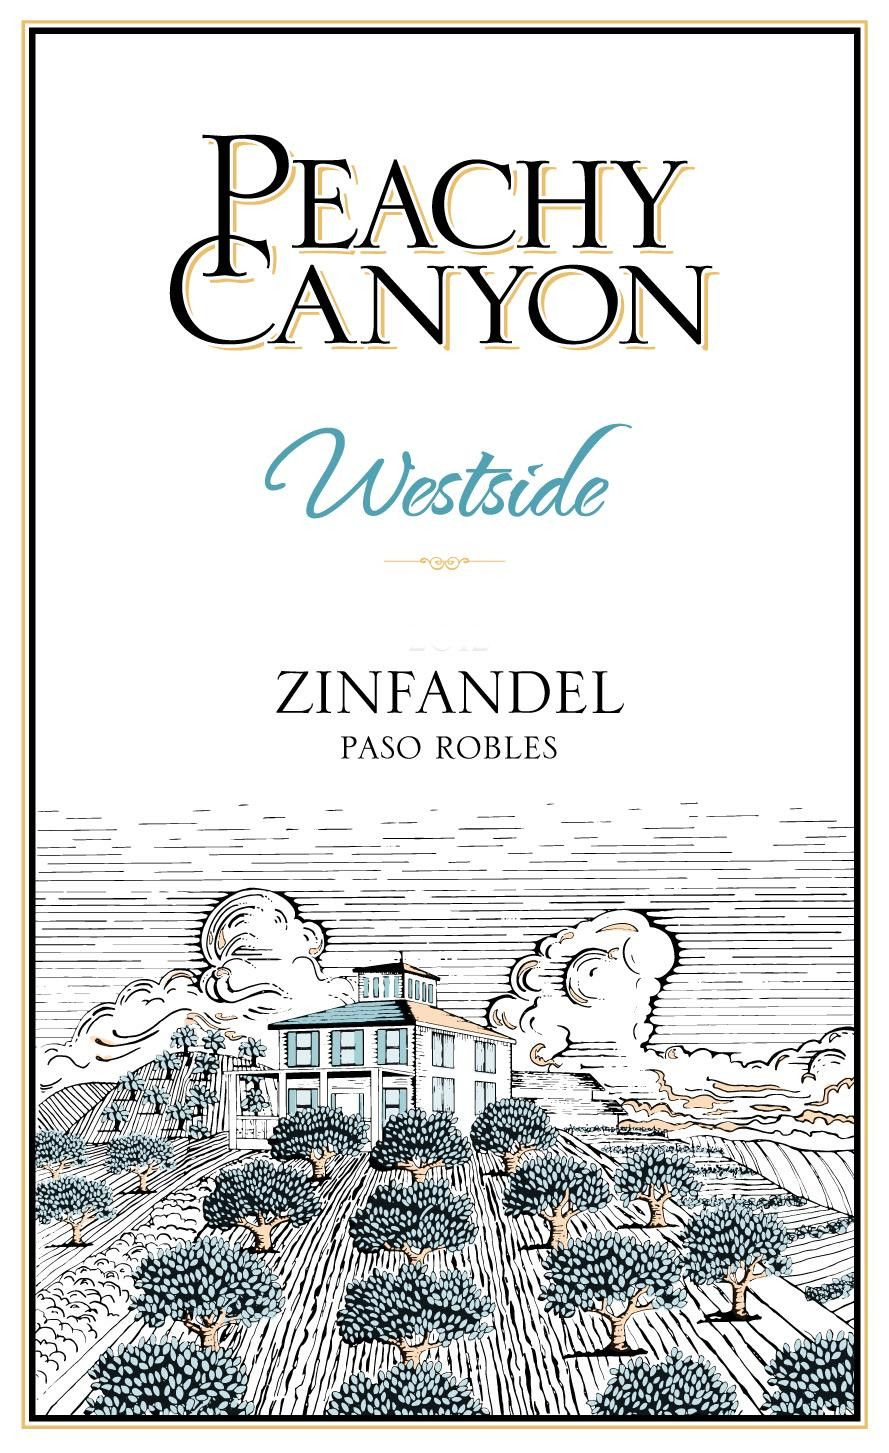 Peachy Canyon Westside Zinfandel 2017  Front Label